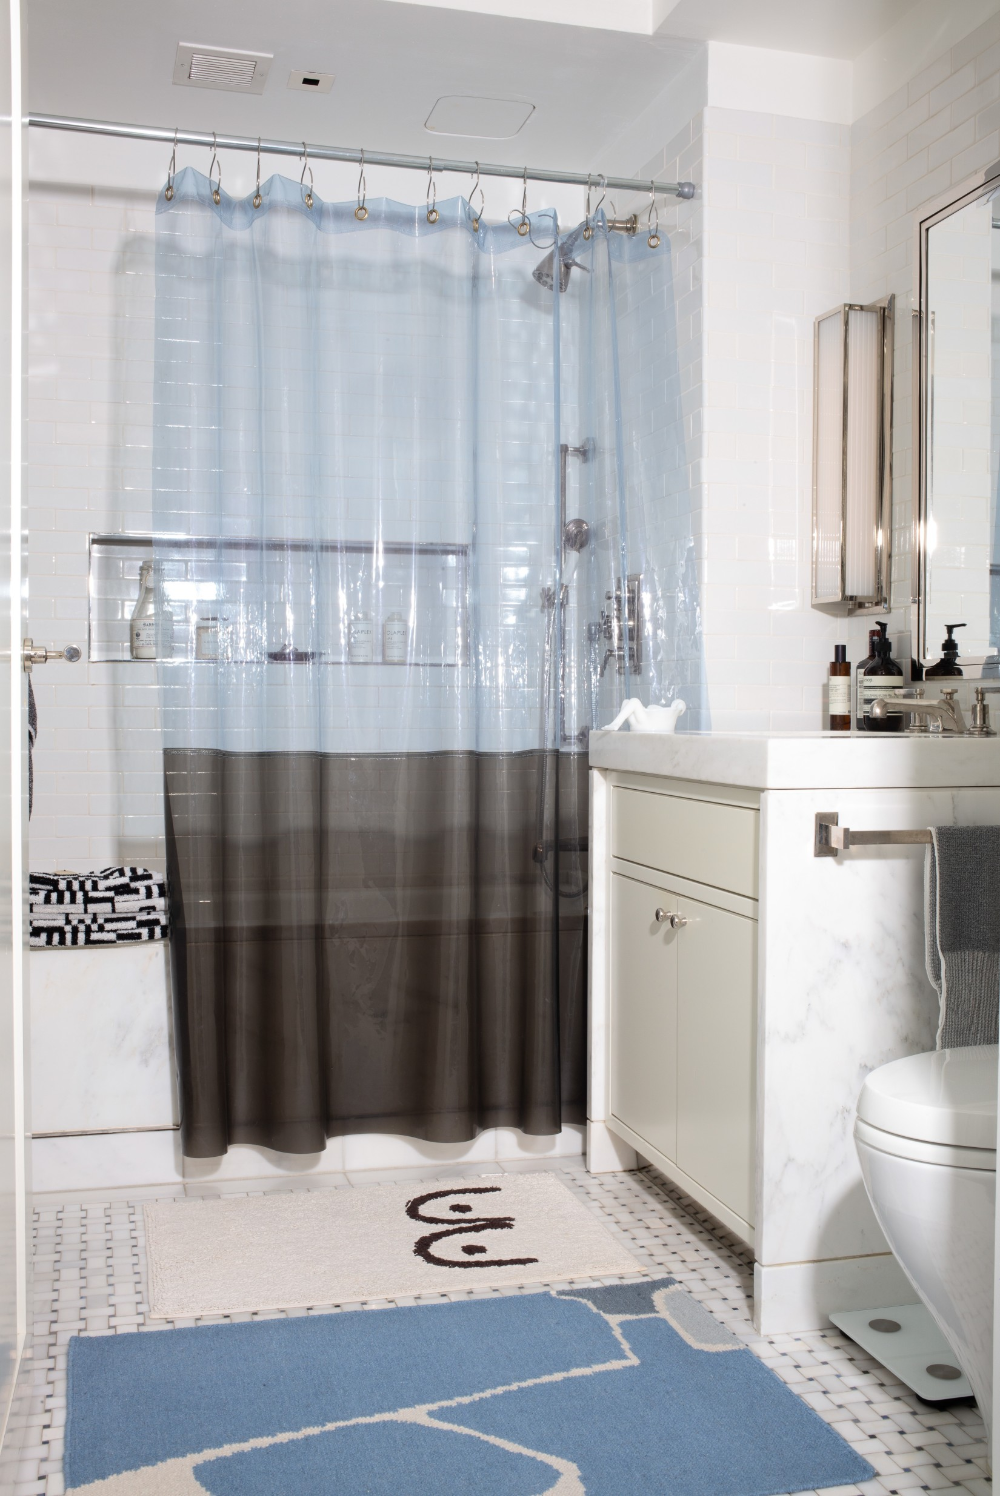 Sun Shower Curtain By Quiet Town Bath Mat By Cold Picnic Flat Weave Rug By Cold Picnic Bathing Lady By Mosser Towels In 2020 Tiger Home Chair Source Flat